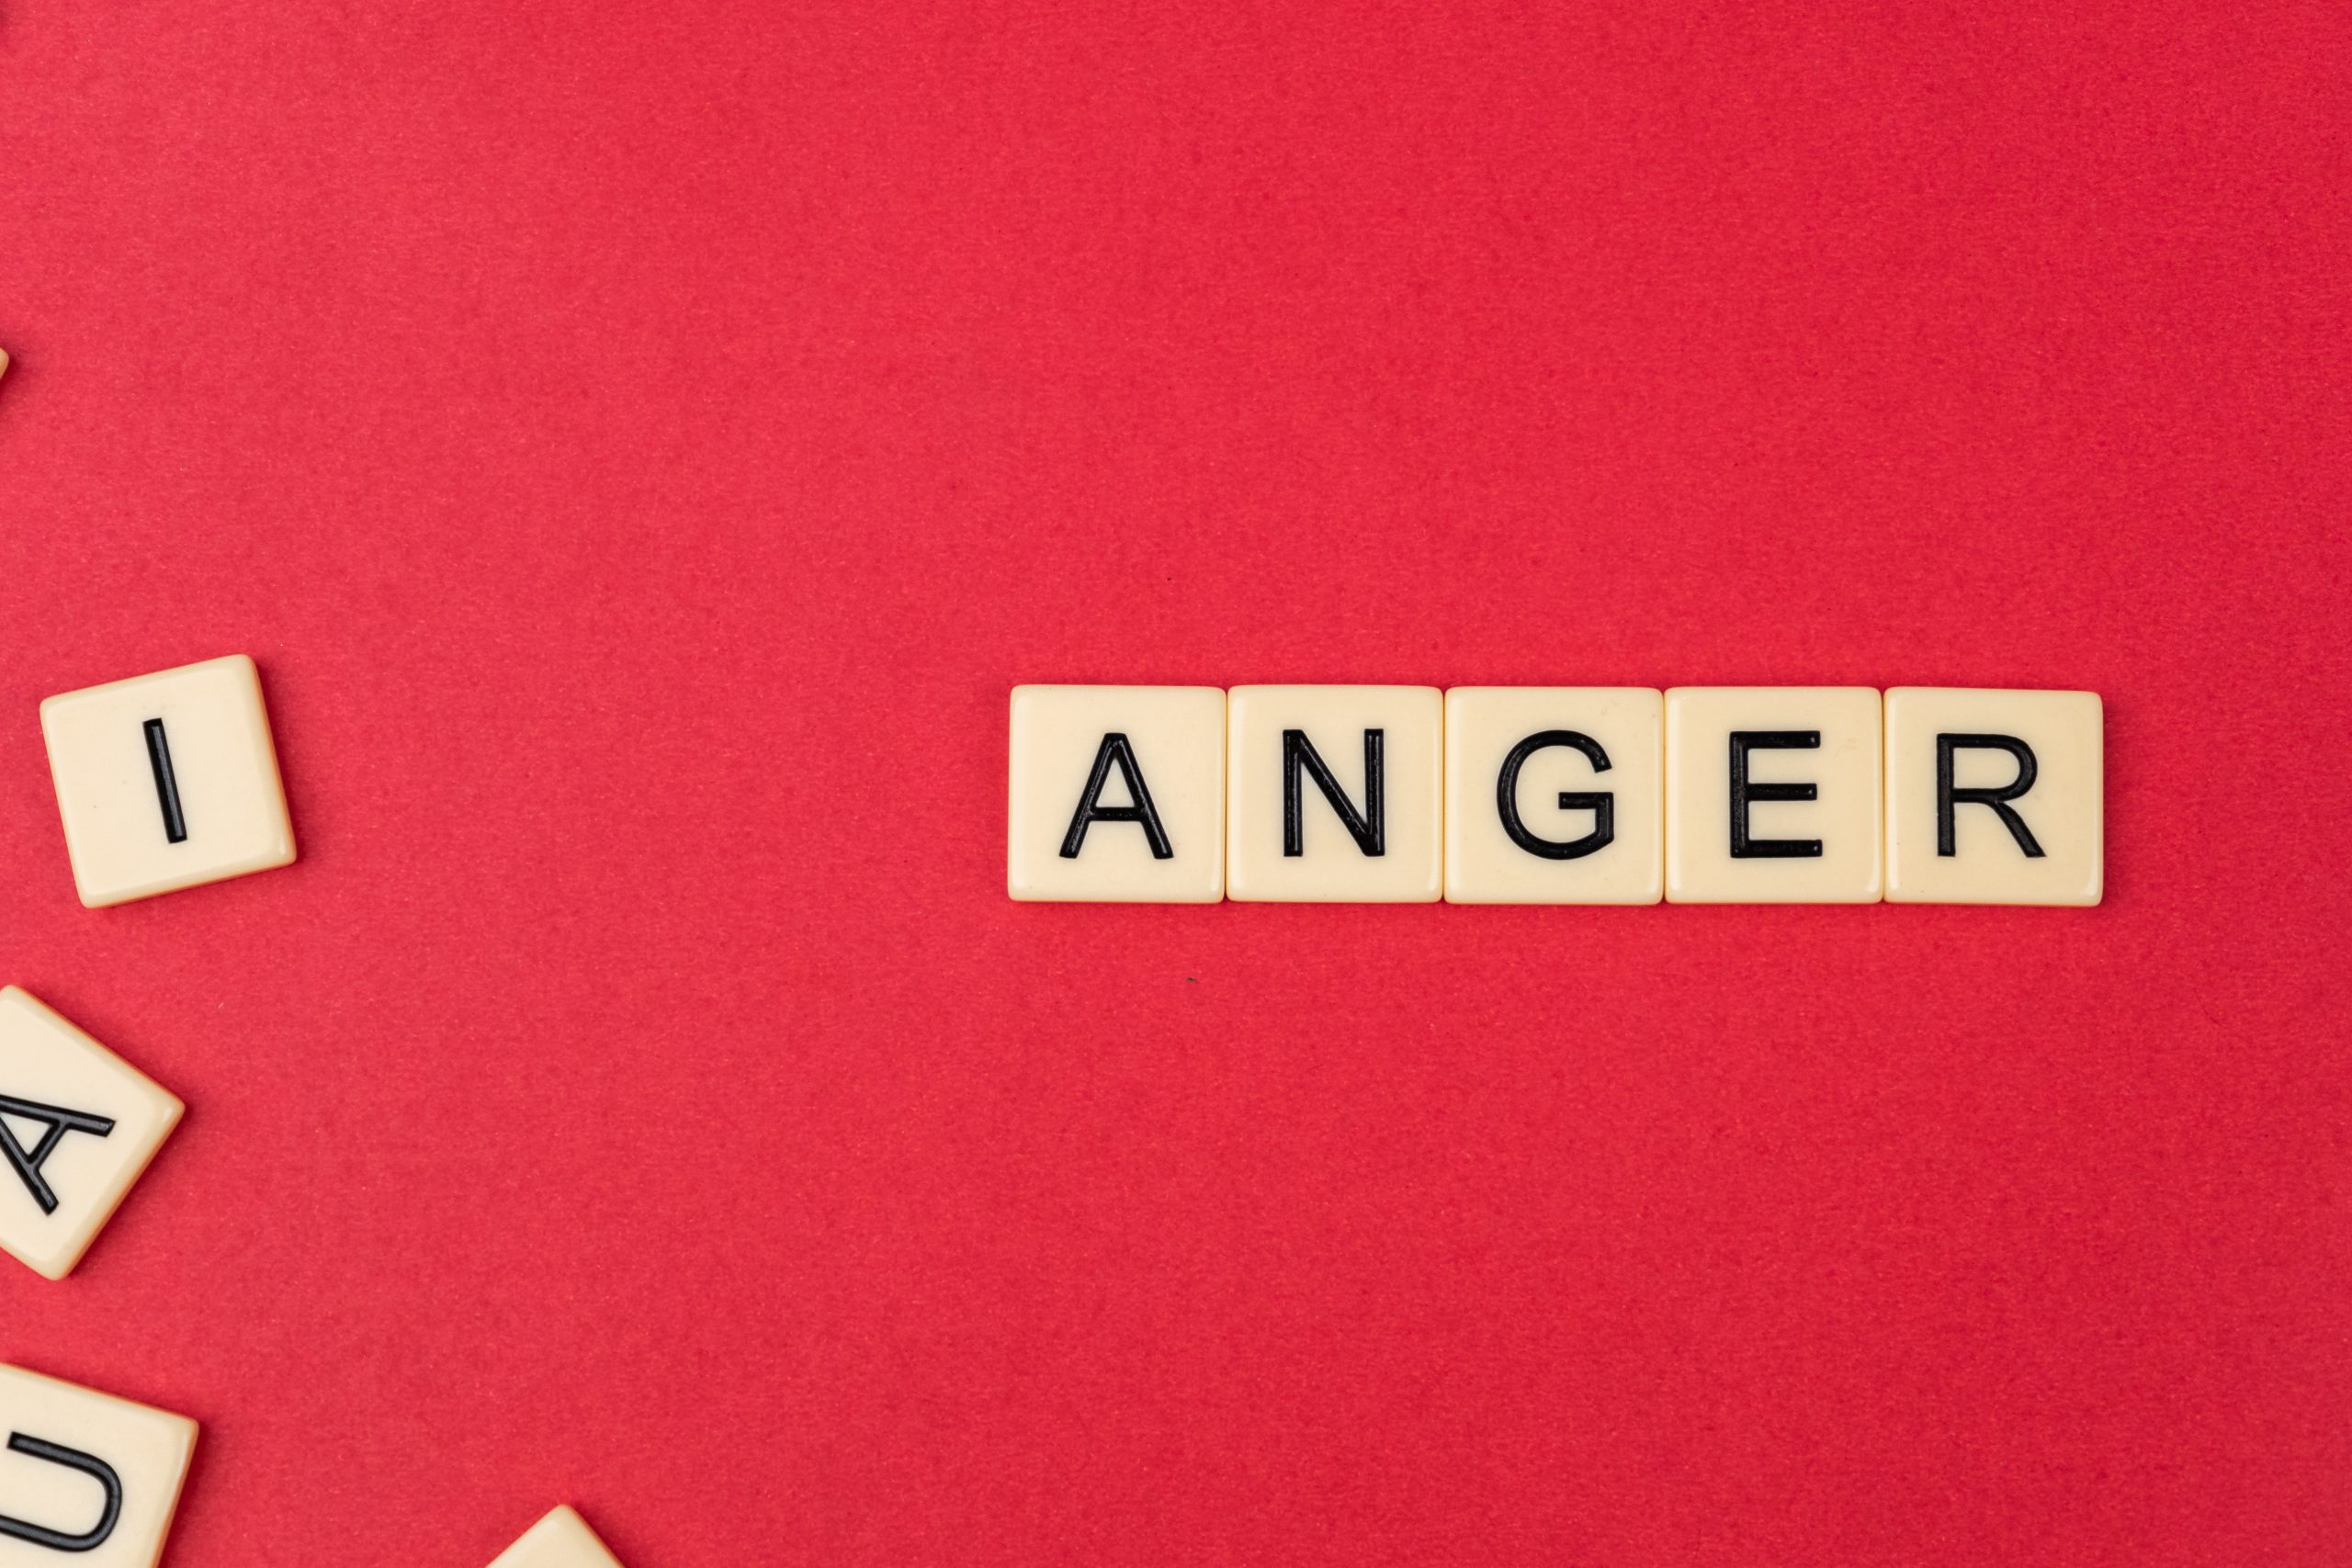 Anger written with scrabble